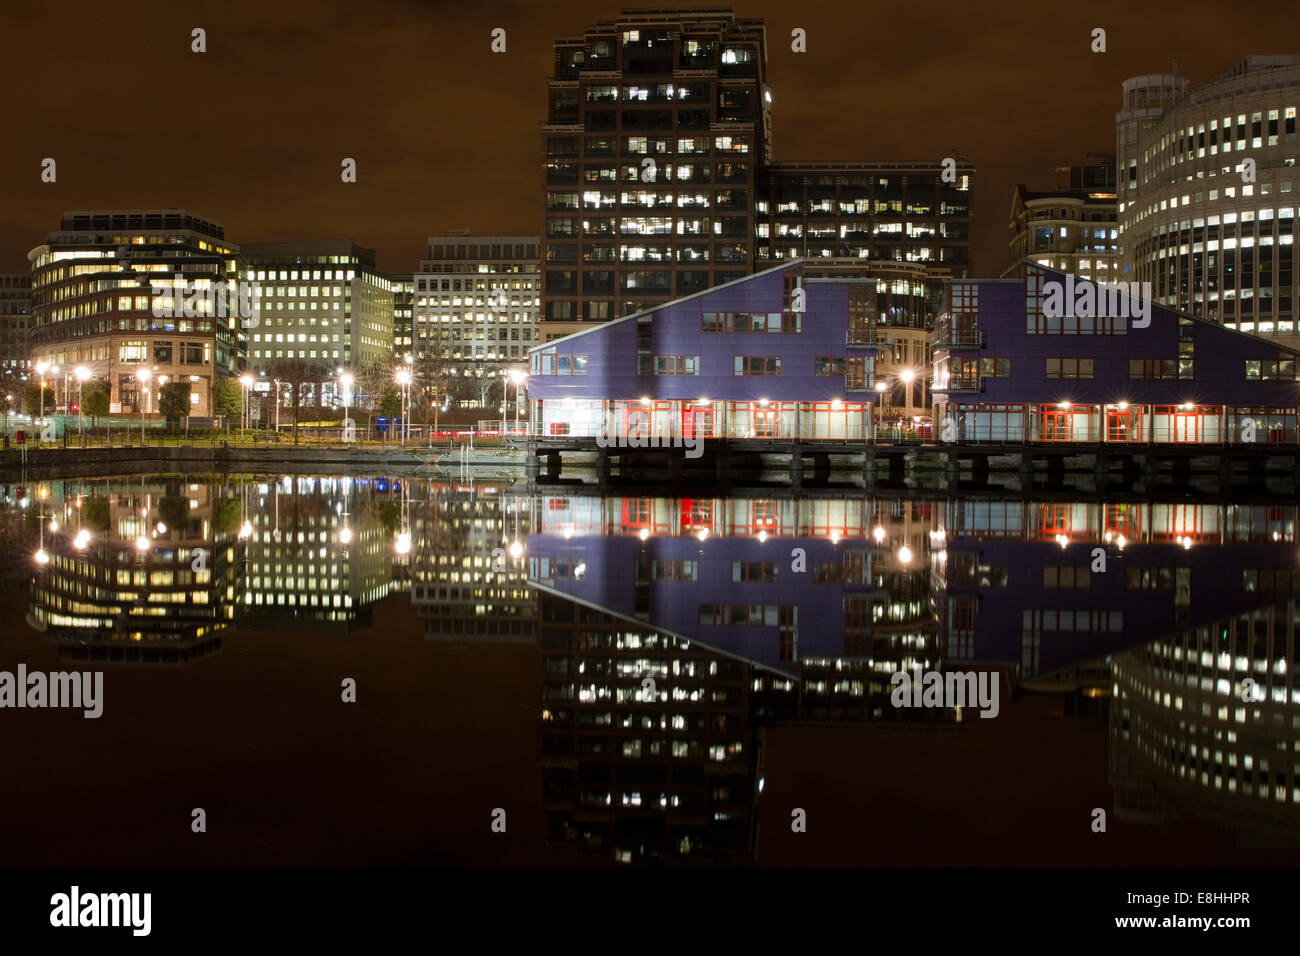 Reflections in water of the various buildings in London's Canary Wharf Financial District. - Stock Image